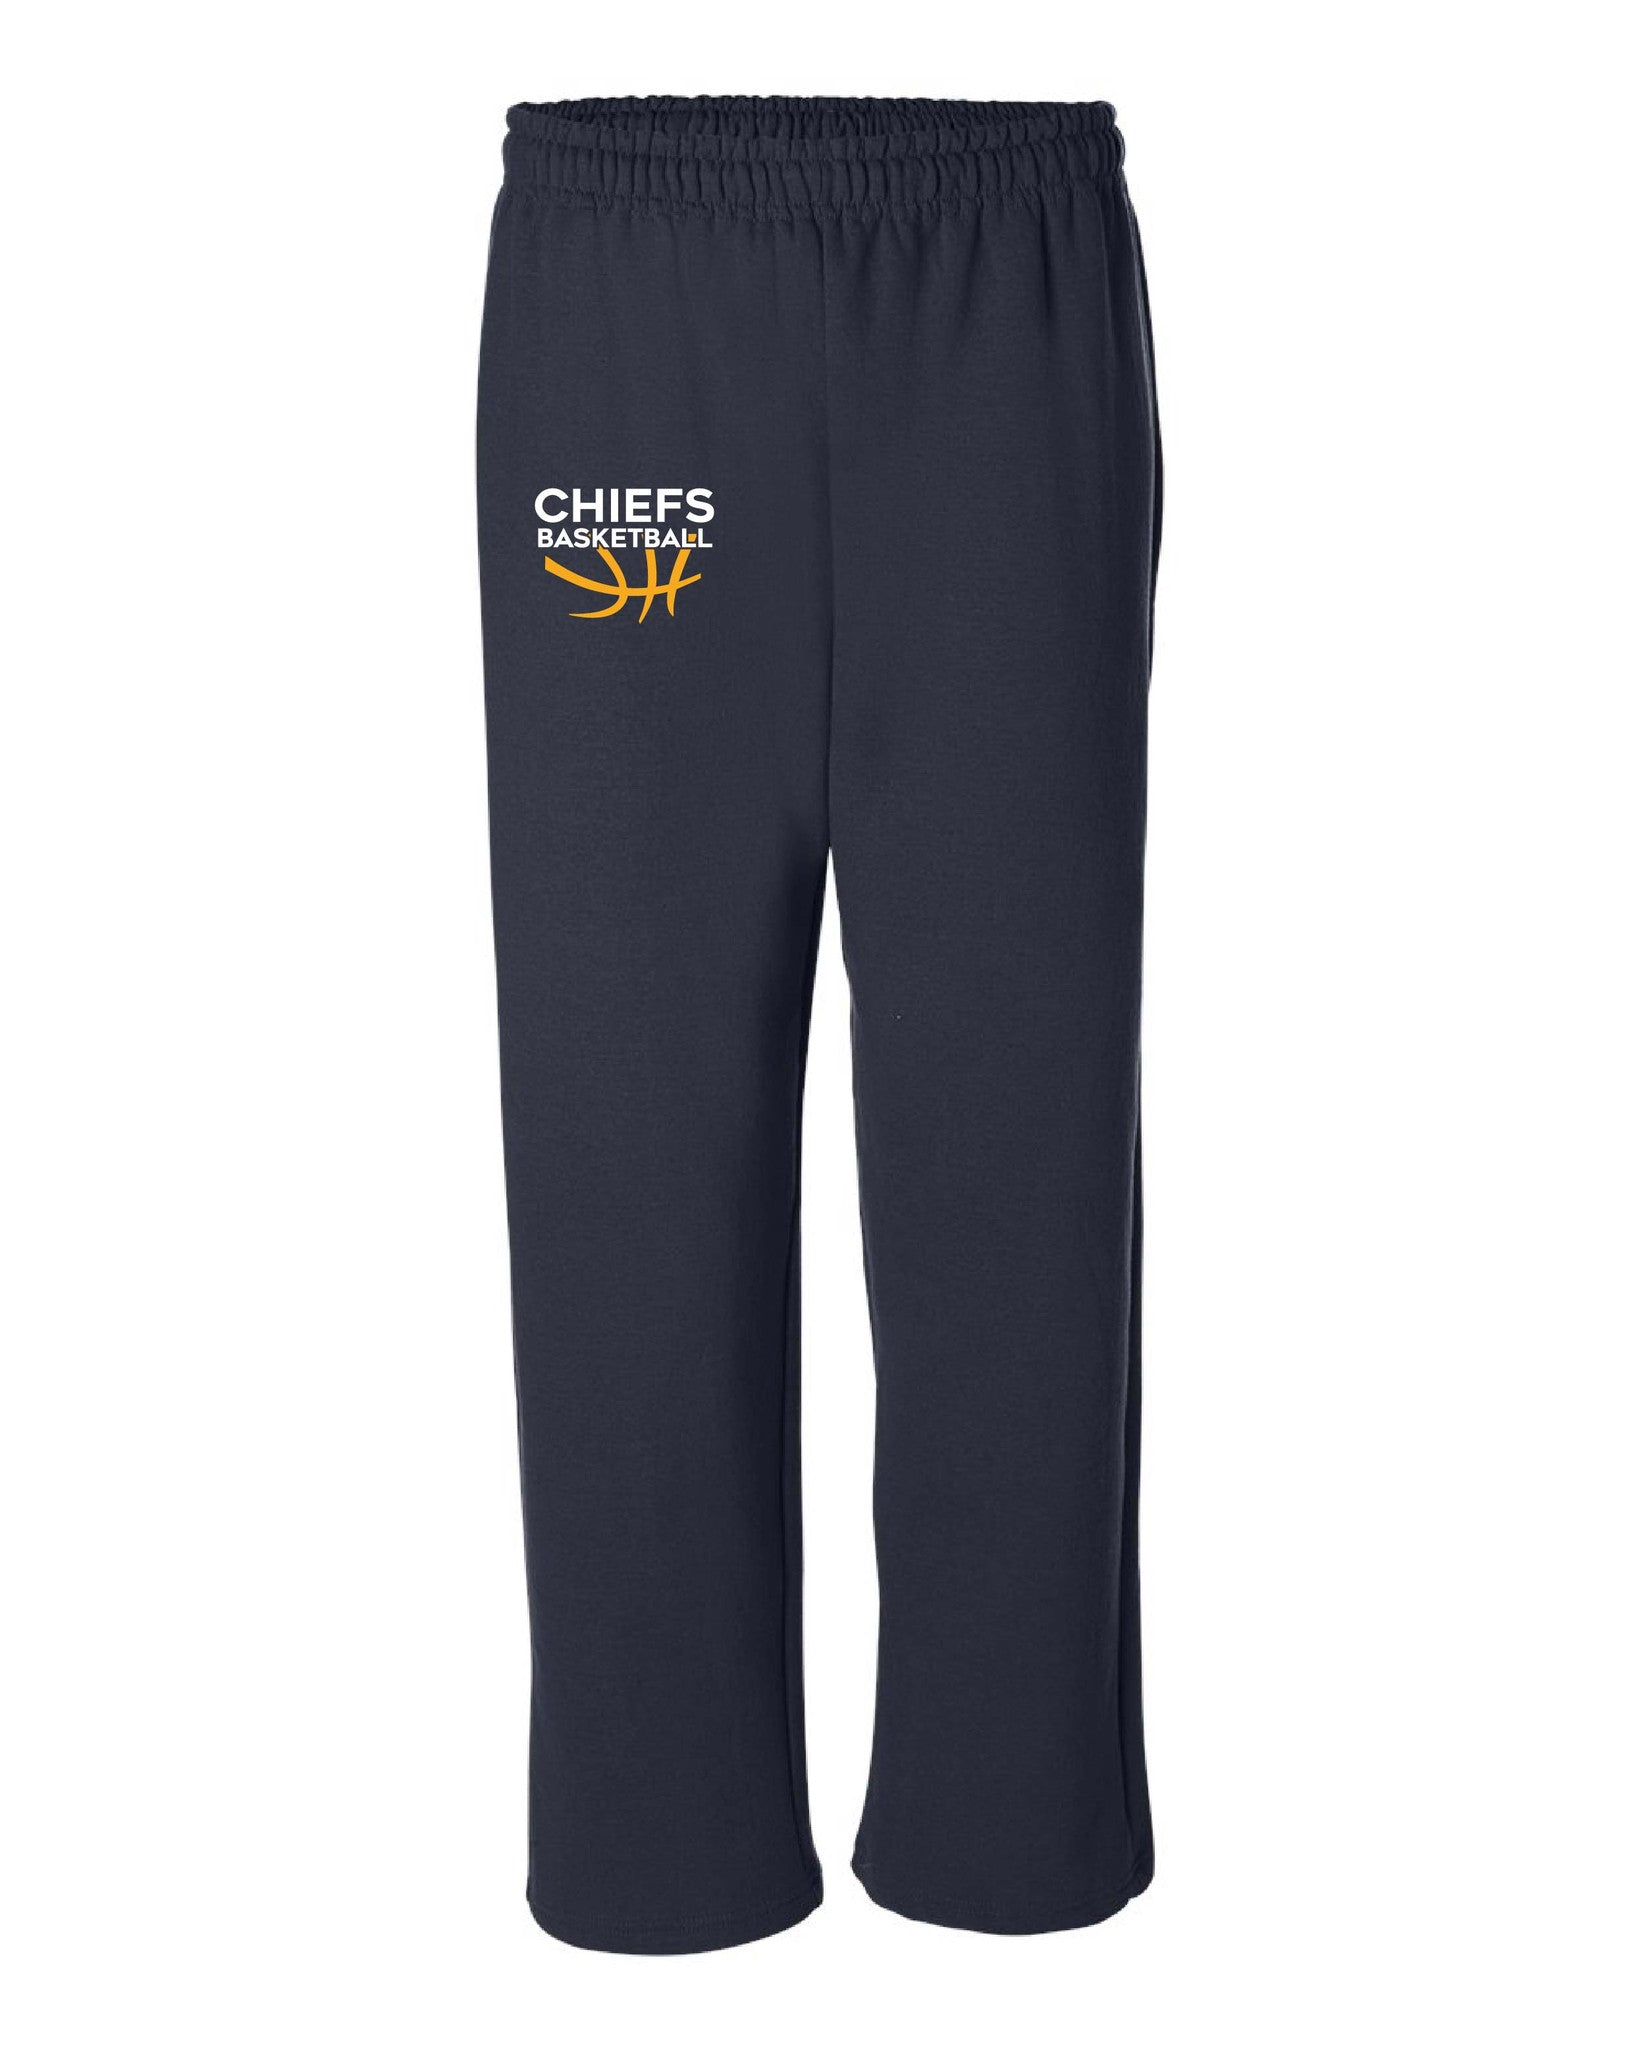 Chiefs Sweatpants - 18400/18400B